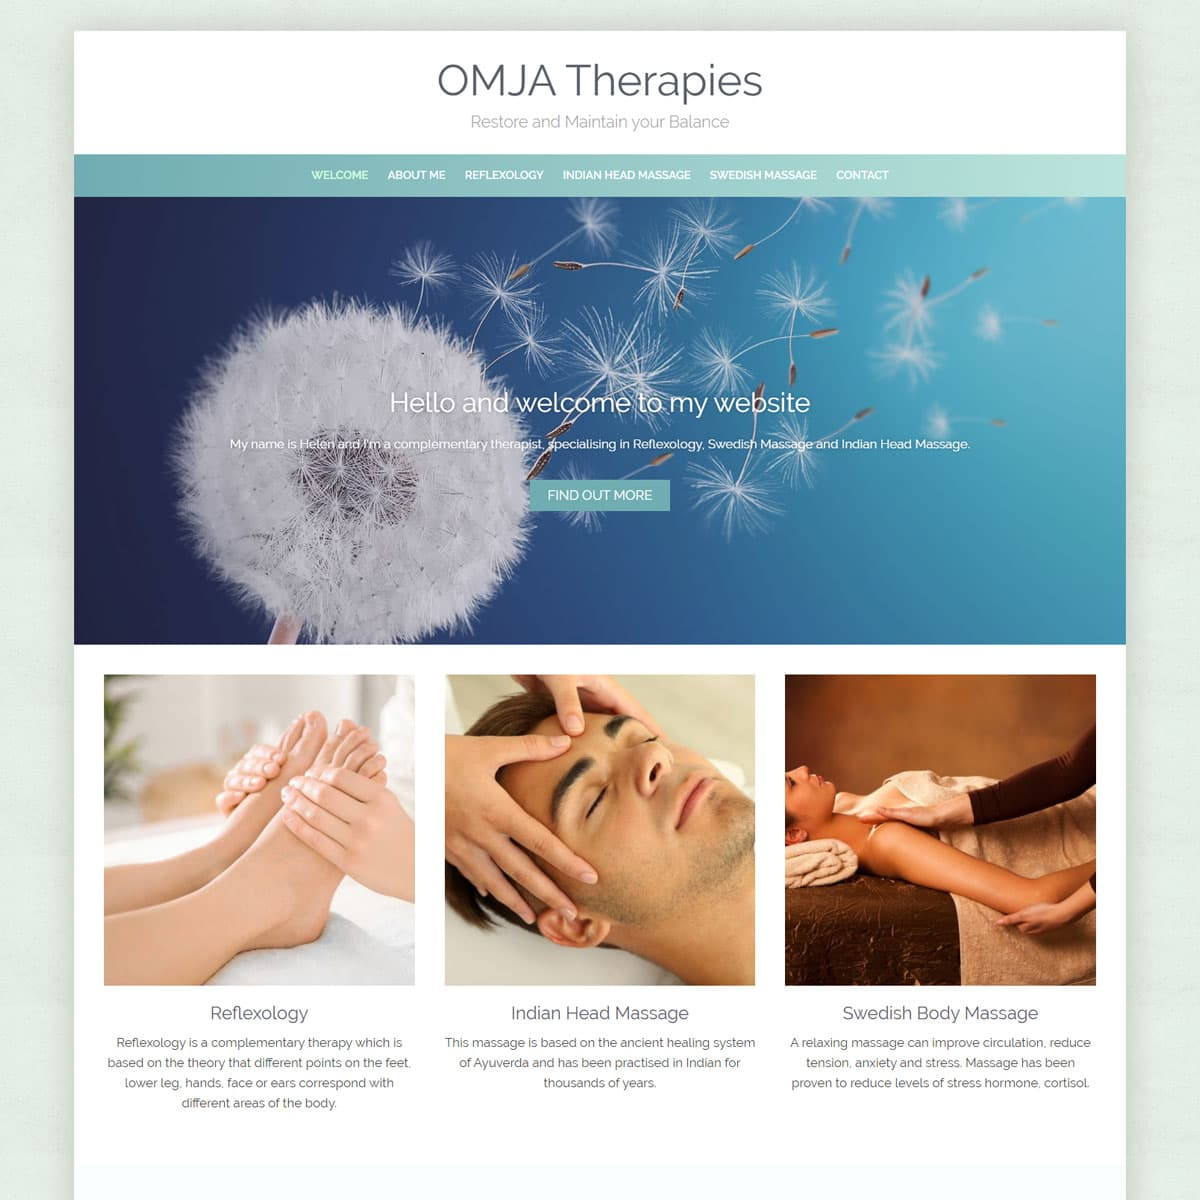 omjatherapies